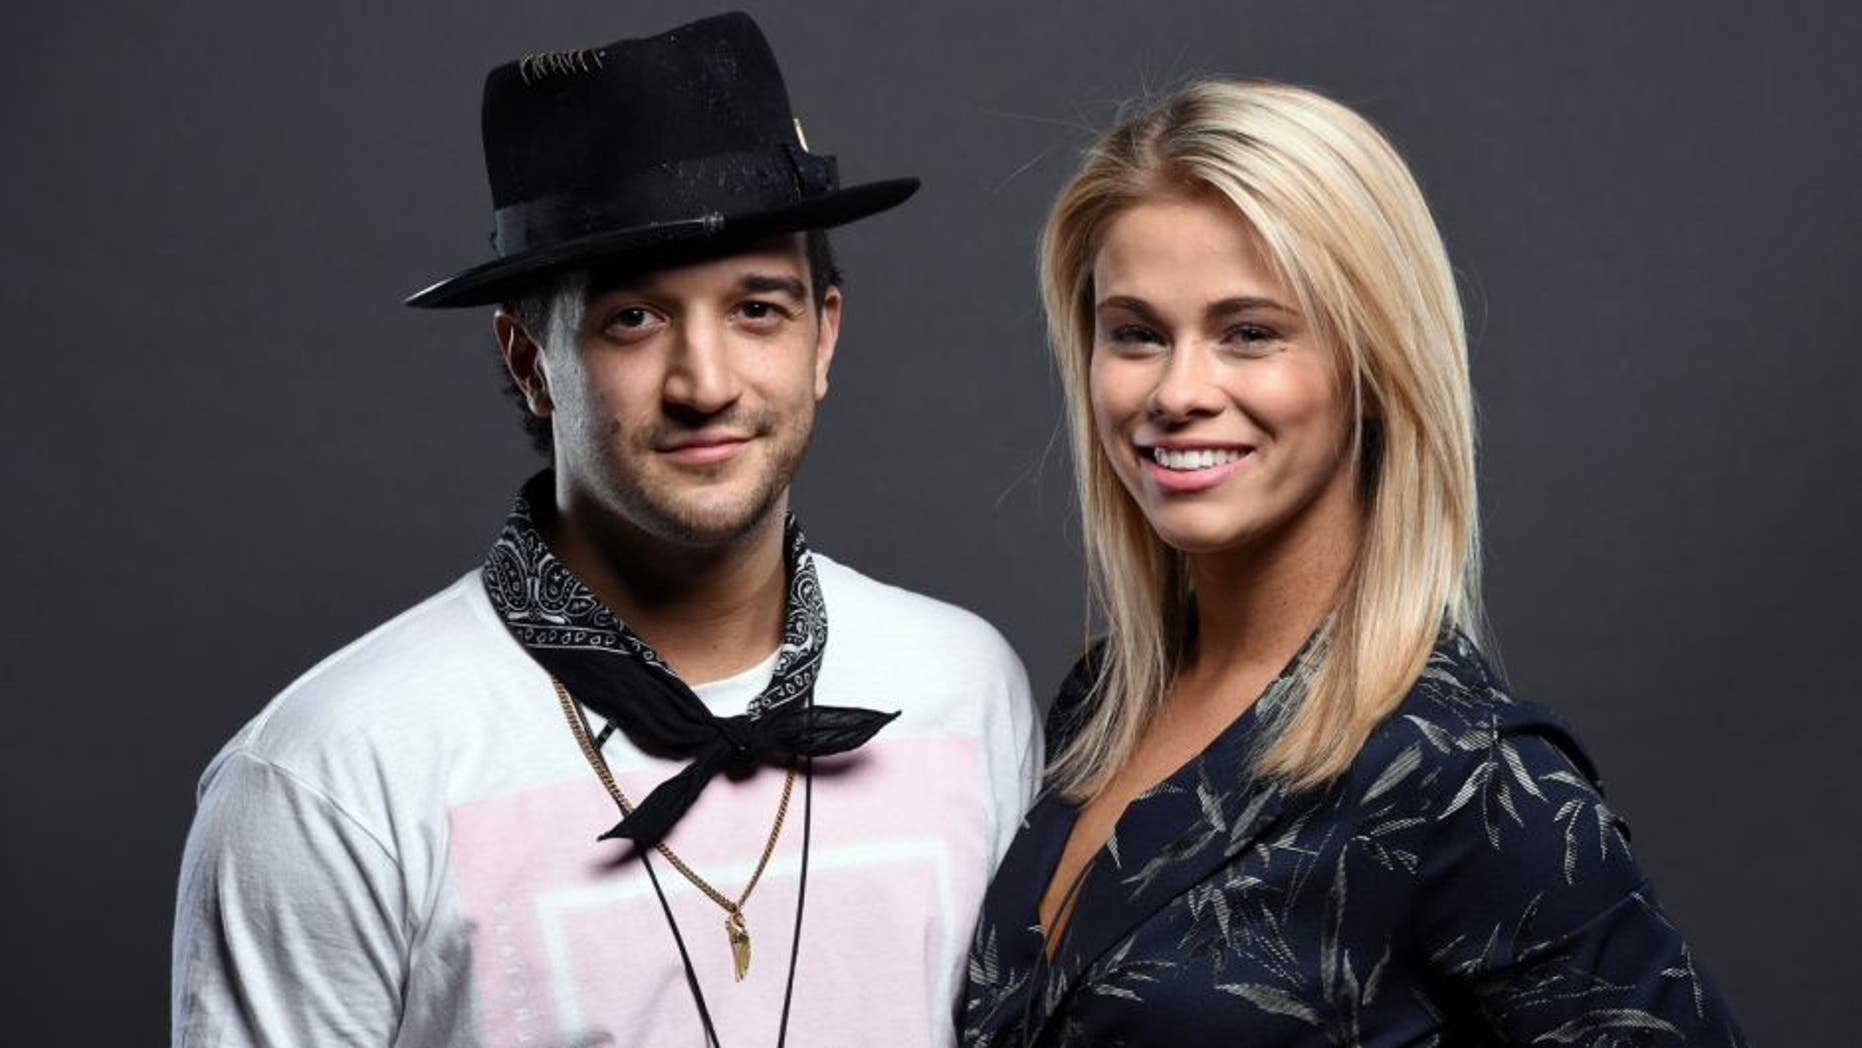 LAS VEGAS, NV - APRIL 22: Mark Ballas (L) and Paige VanZant pose for a portrait backstage during the UFC 197 weigh-in at MGM Grand Garden Arena on April 22, 2016 in Las Vegas, Nevada. (Photo by Mike Roach/Zuffa LLC/Zuffa LLC via Getty Images)